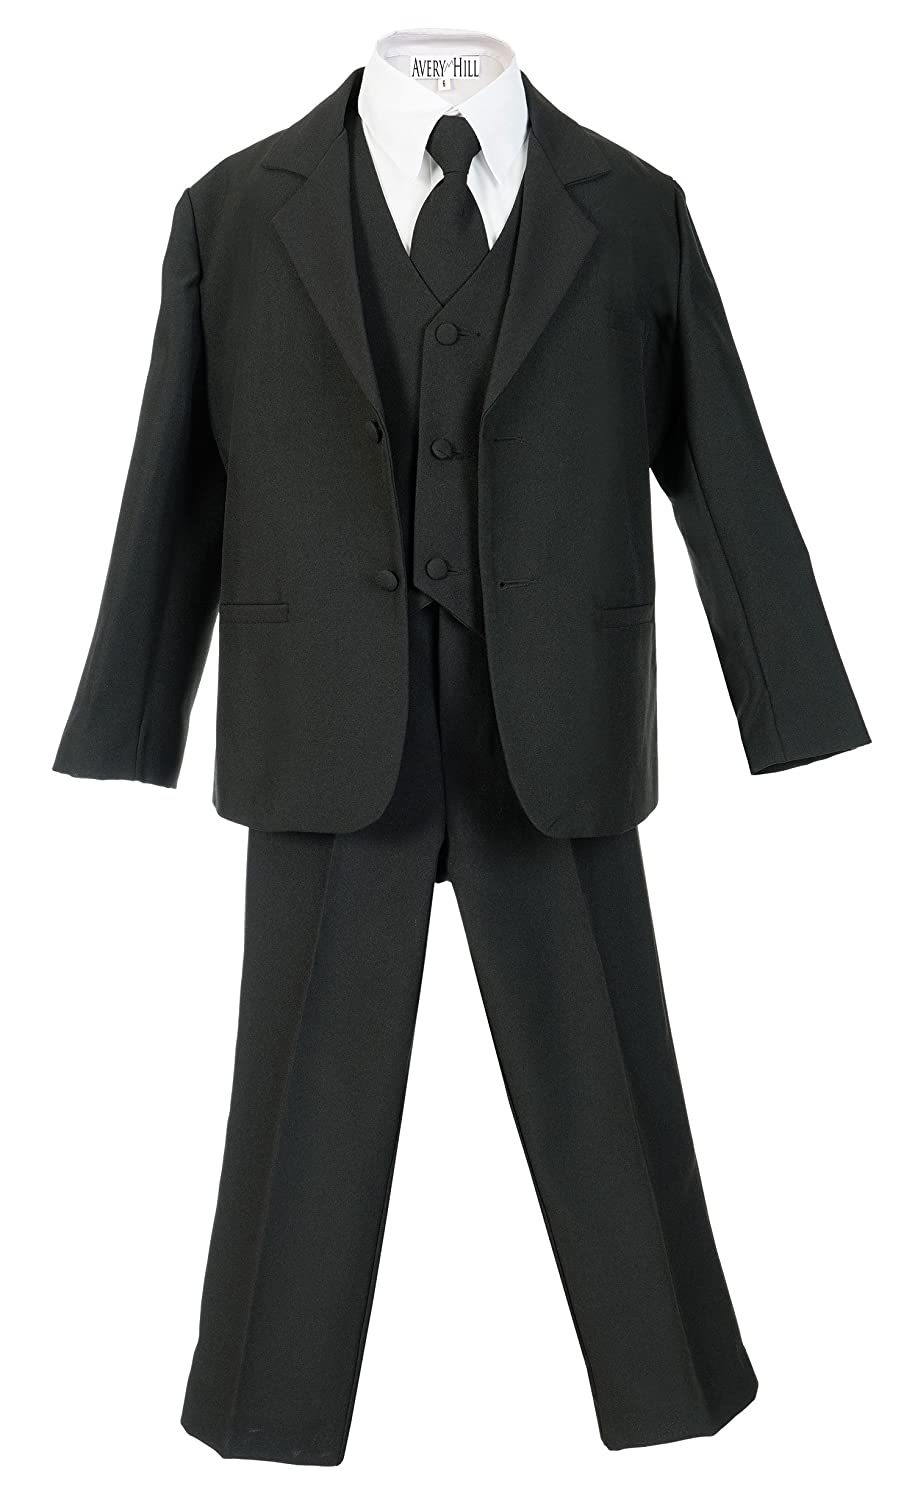 a5db8bee4 Amazon.com: Avery Hill Boys Formal 5 Piece Suit Shirt Vest: Clothing